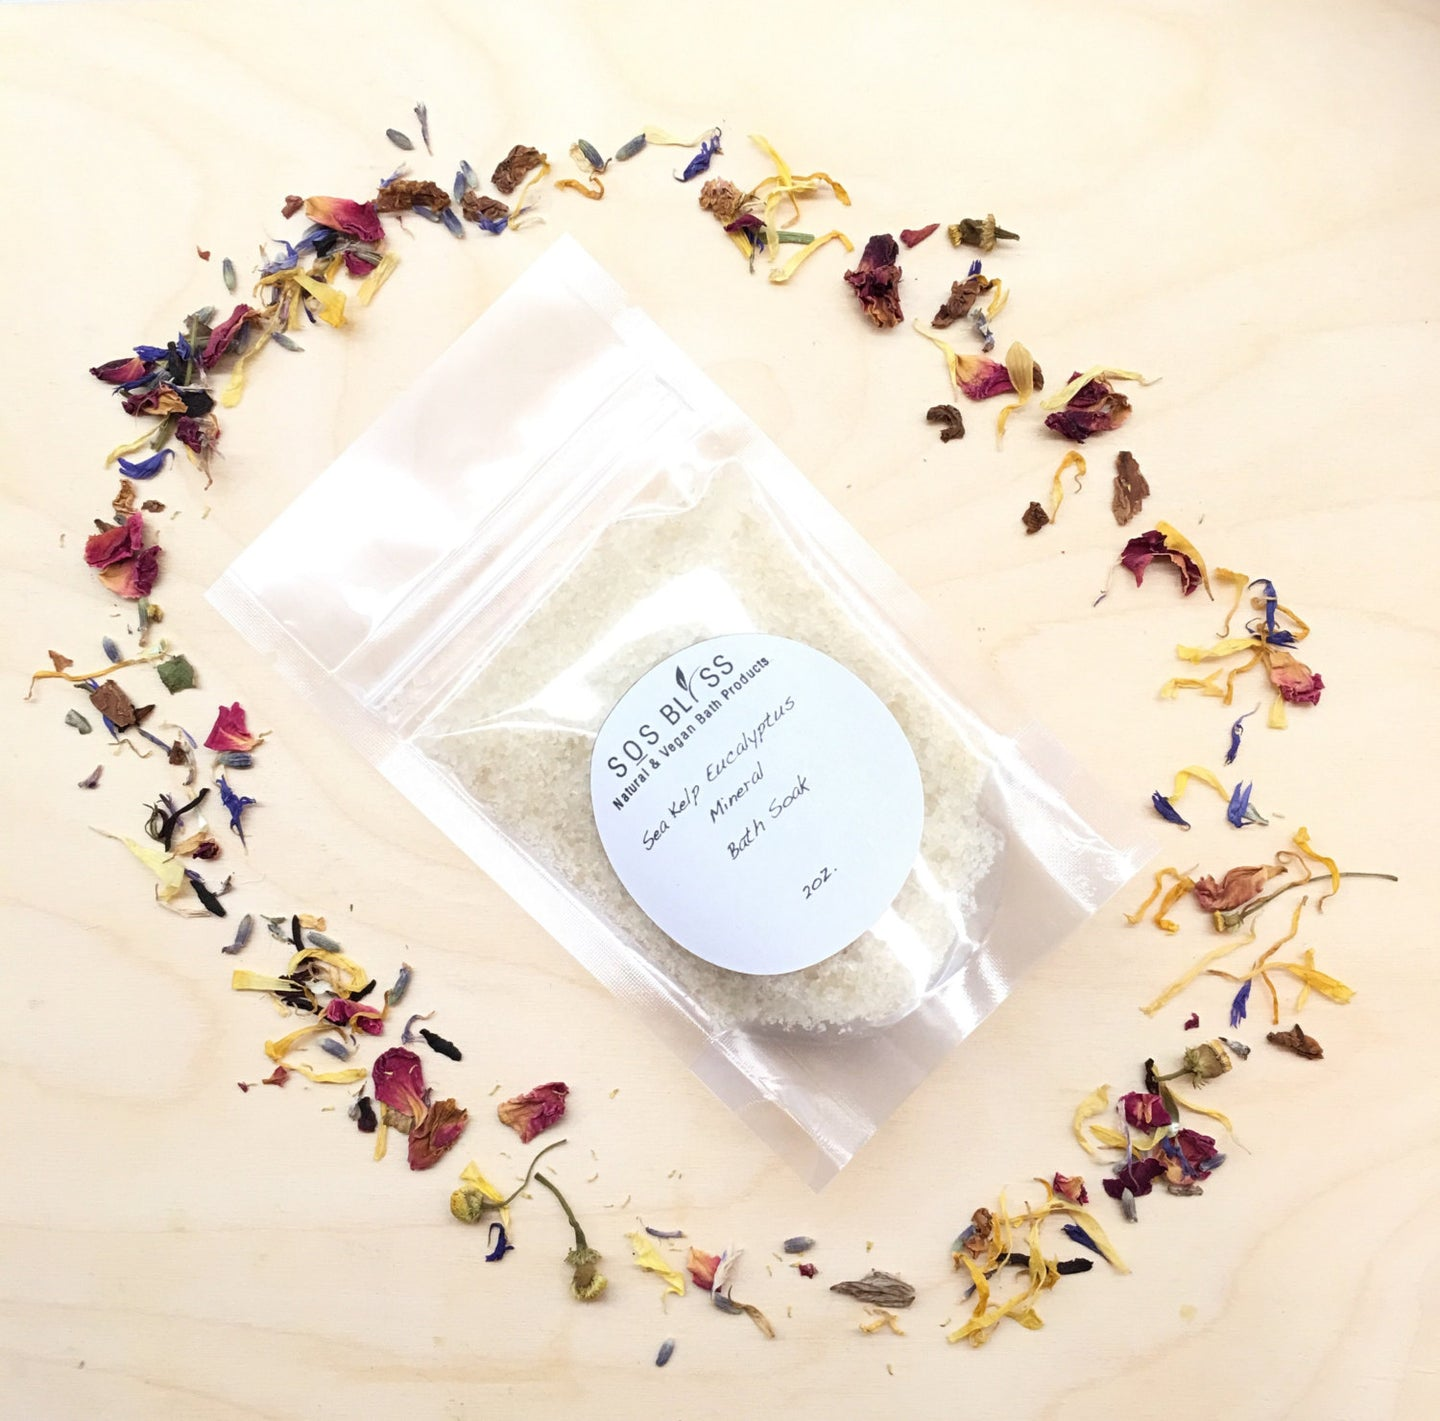 Wholesale_Bath_Salts Soap Sinus Relief Sea_Kelp Mineral_Soak Gift_For_Her Essential_Oil Epsom_Salts Detox_Salts Dead_Sea_Salts Bath_Soaks Bath_Salts Bath_And_Beauty Aromatherapy_Bath Aromatherapy Salts